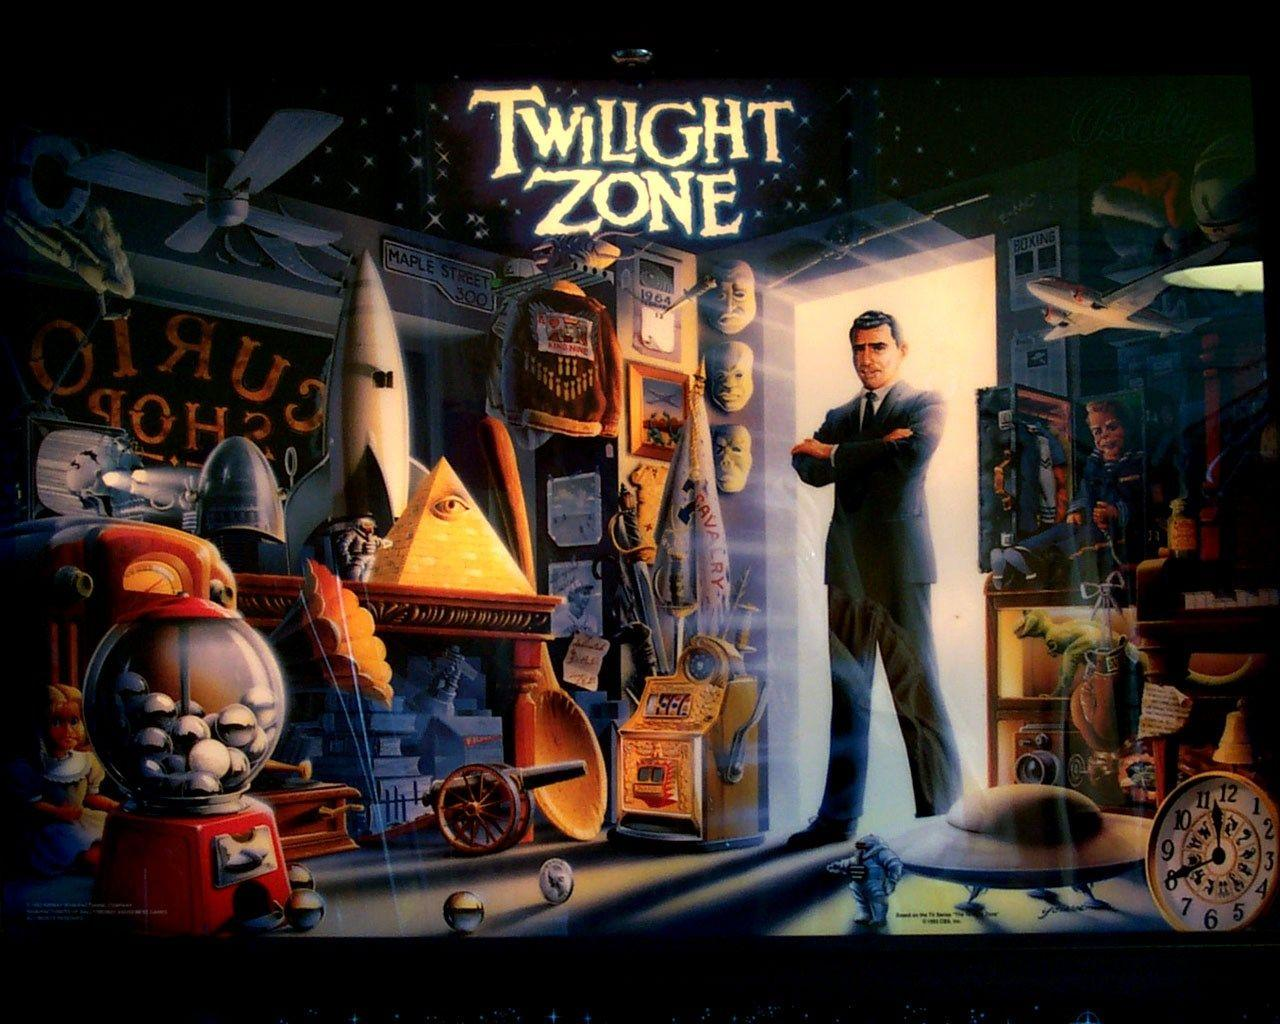 the twilight zone desktop nexus wallpapers 1280x1024